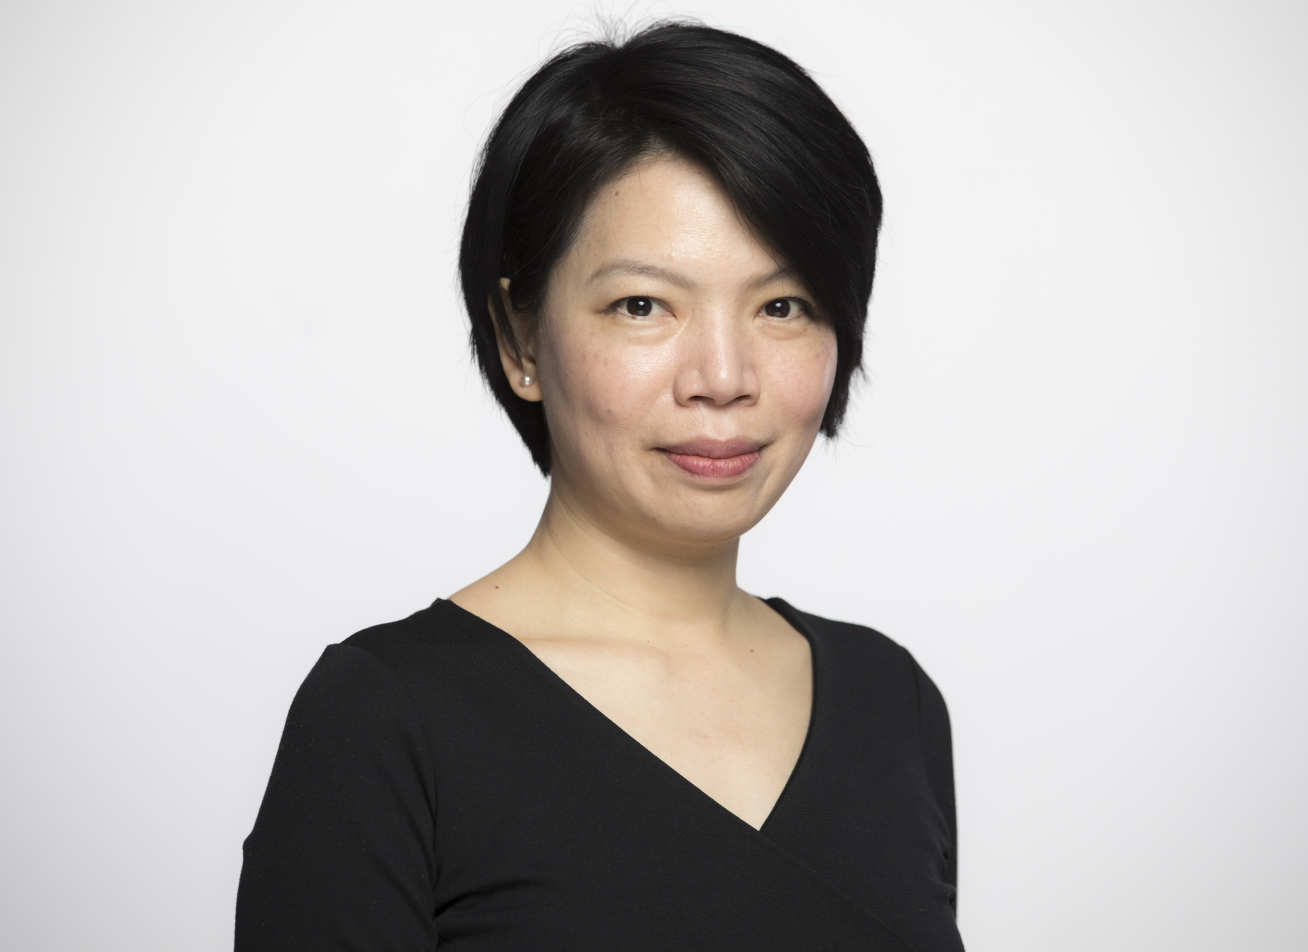 Dr Ying-Ying Hsieh